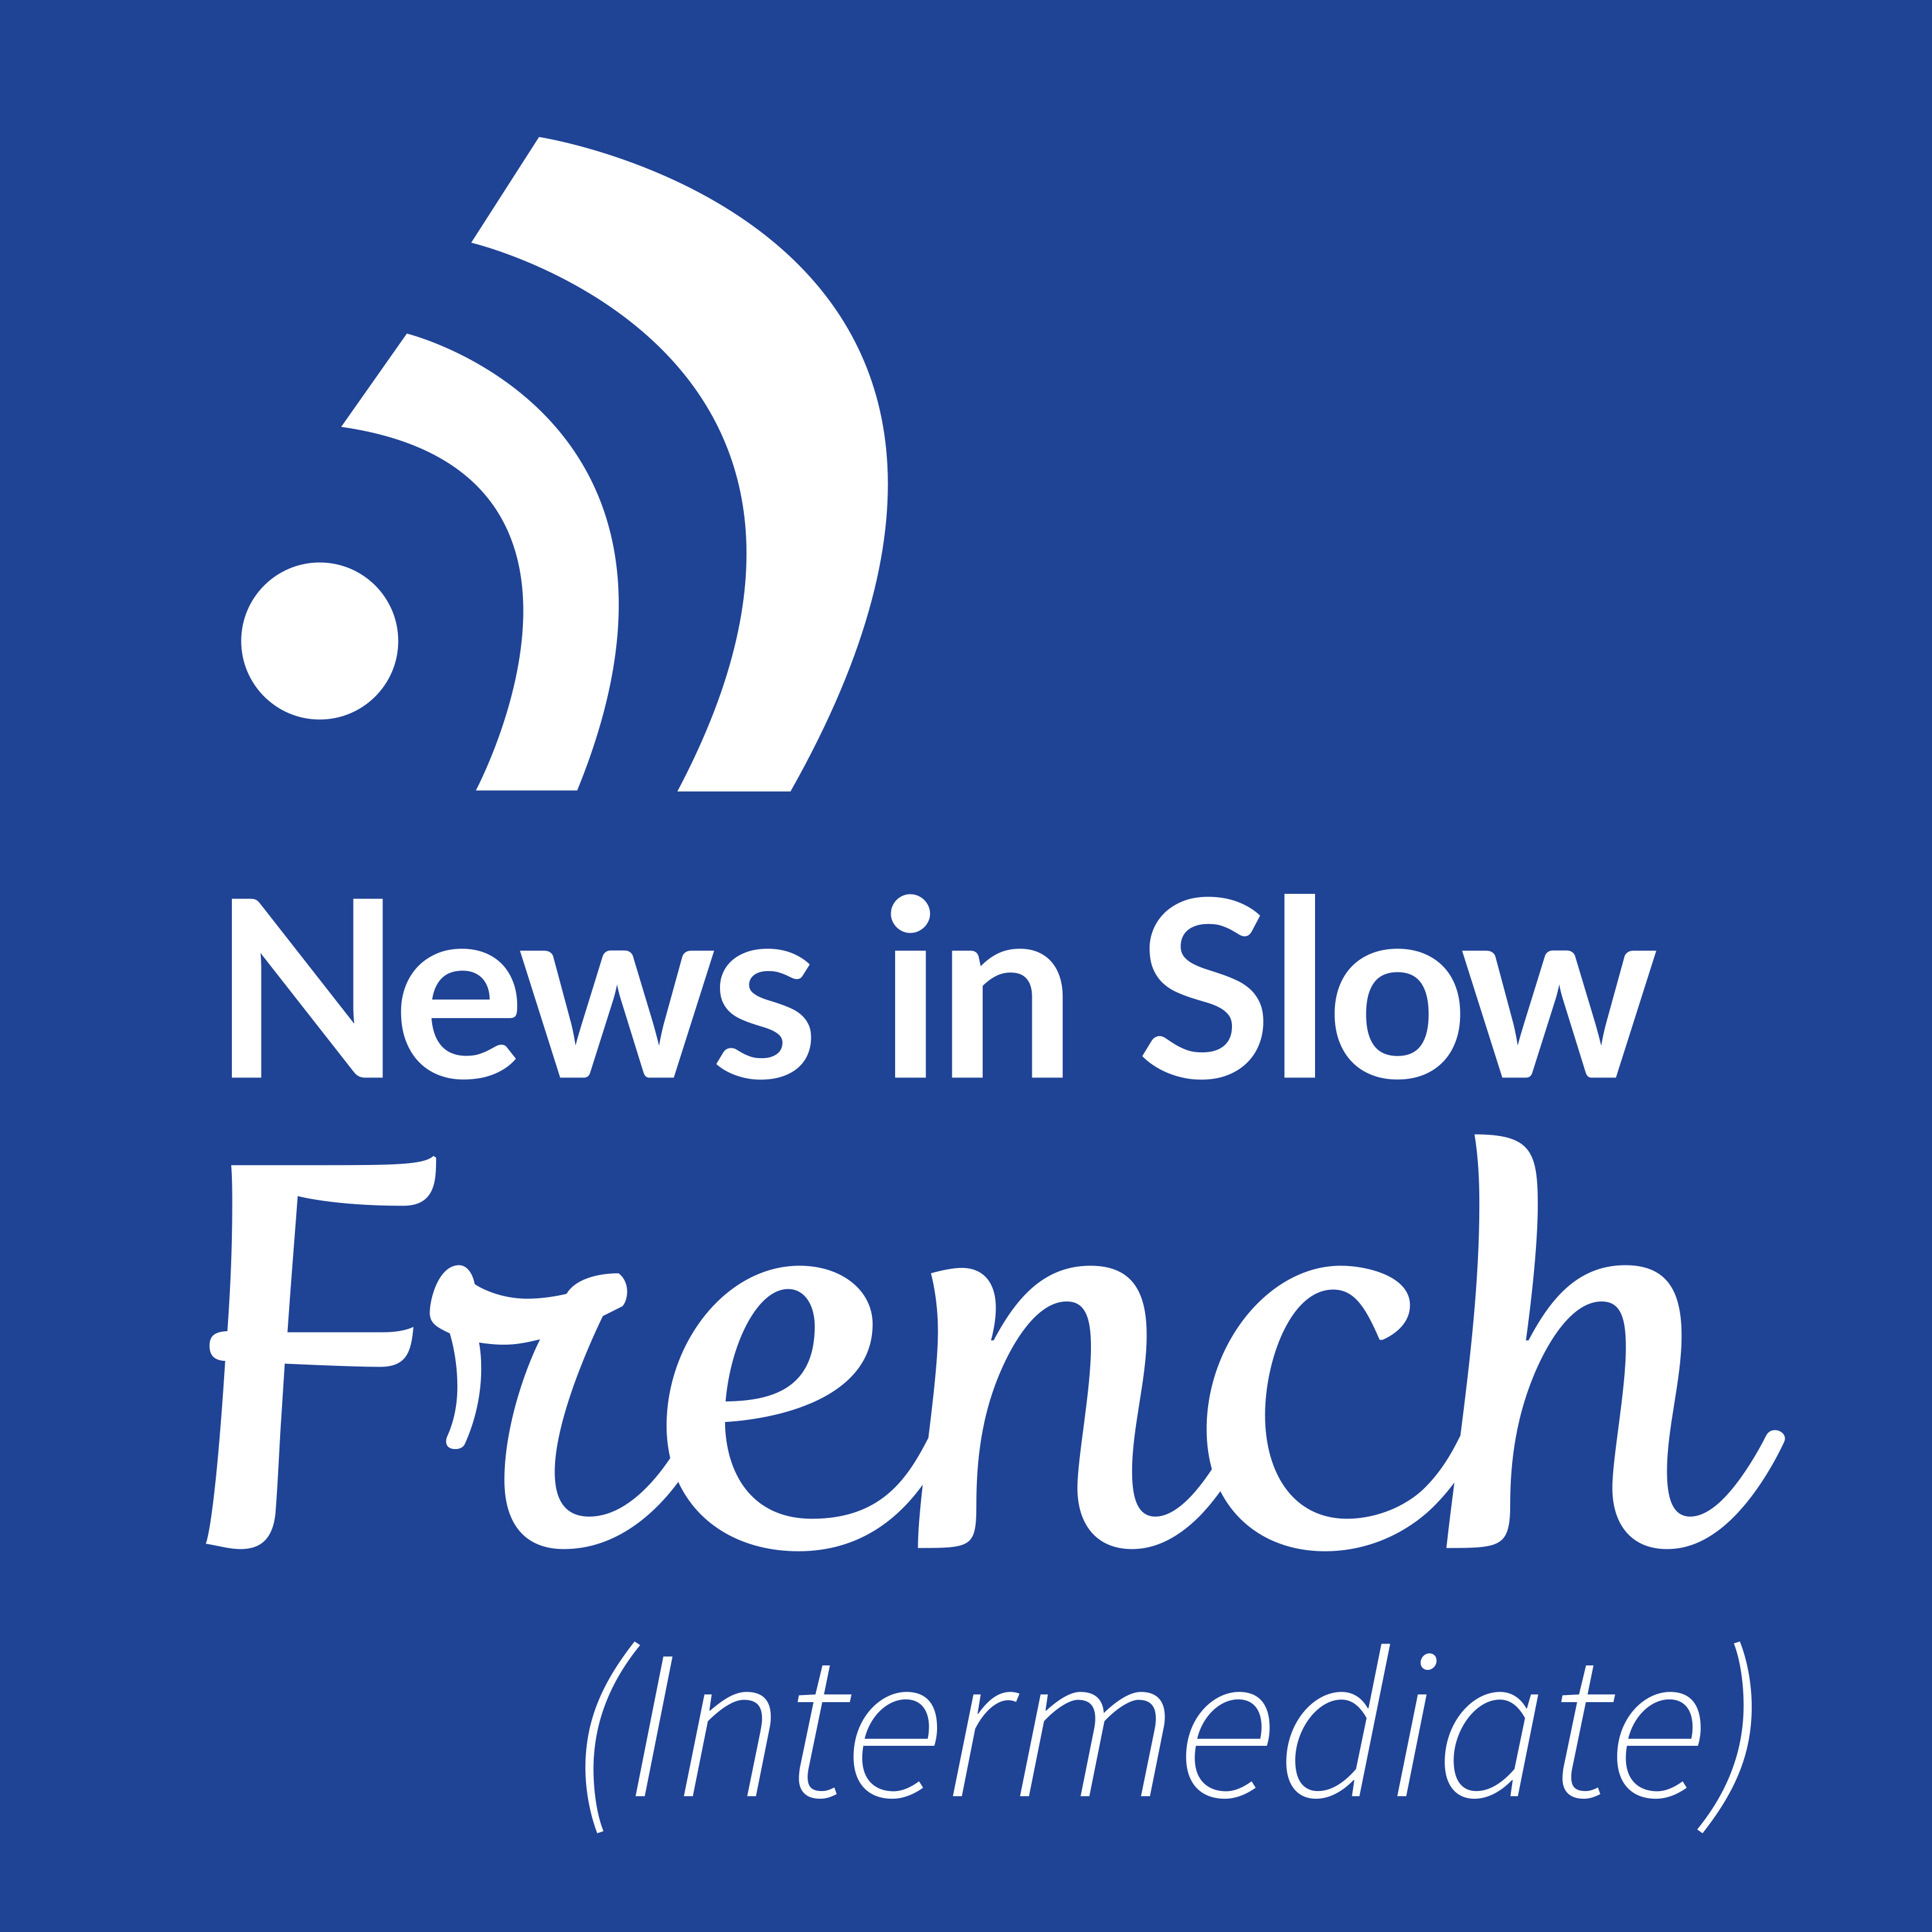 News in Slow French #287 - Learn French through current events